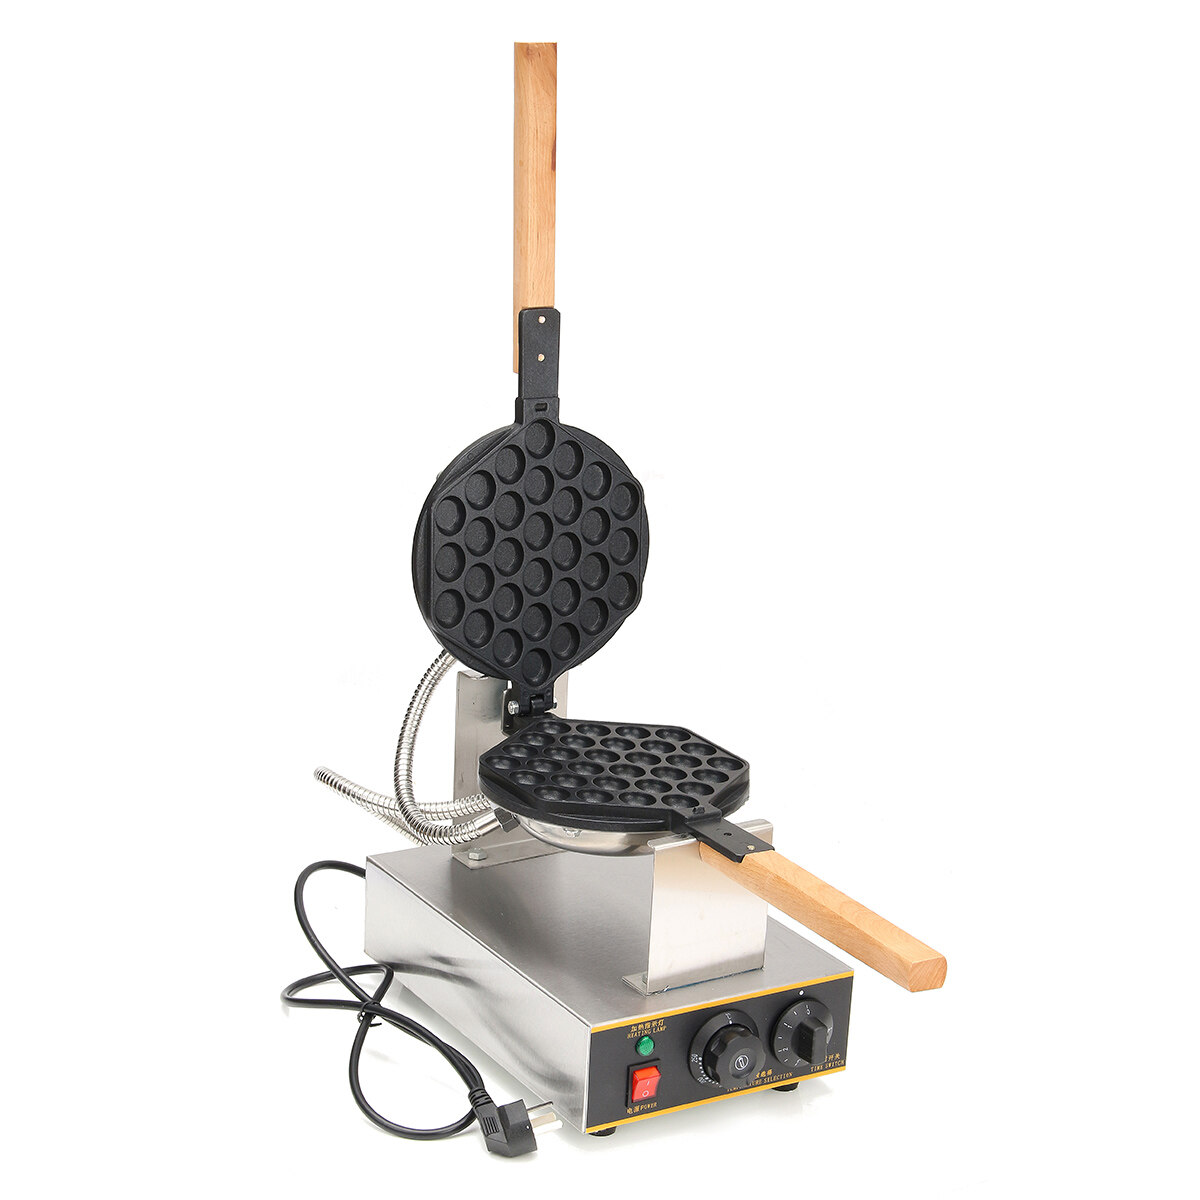 50℃-250℃ Electric Non-Stick Qq Egg Puff Waffle Maker Cake Oven Baking Machine - Intl By Audew.